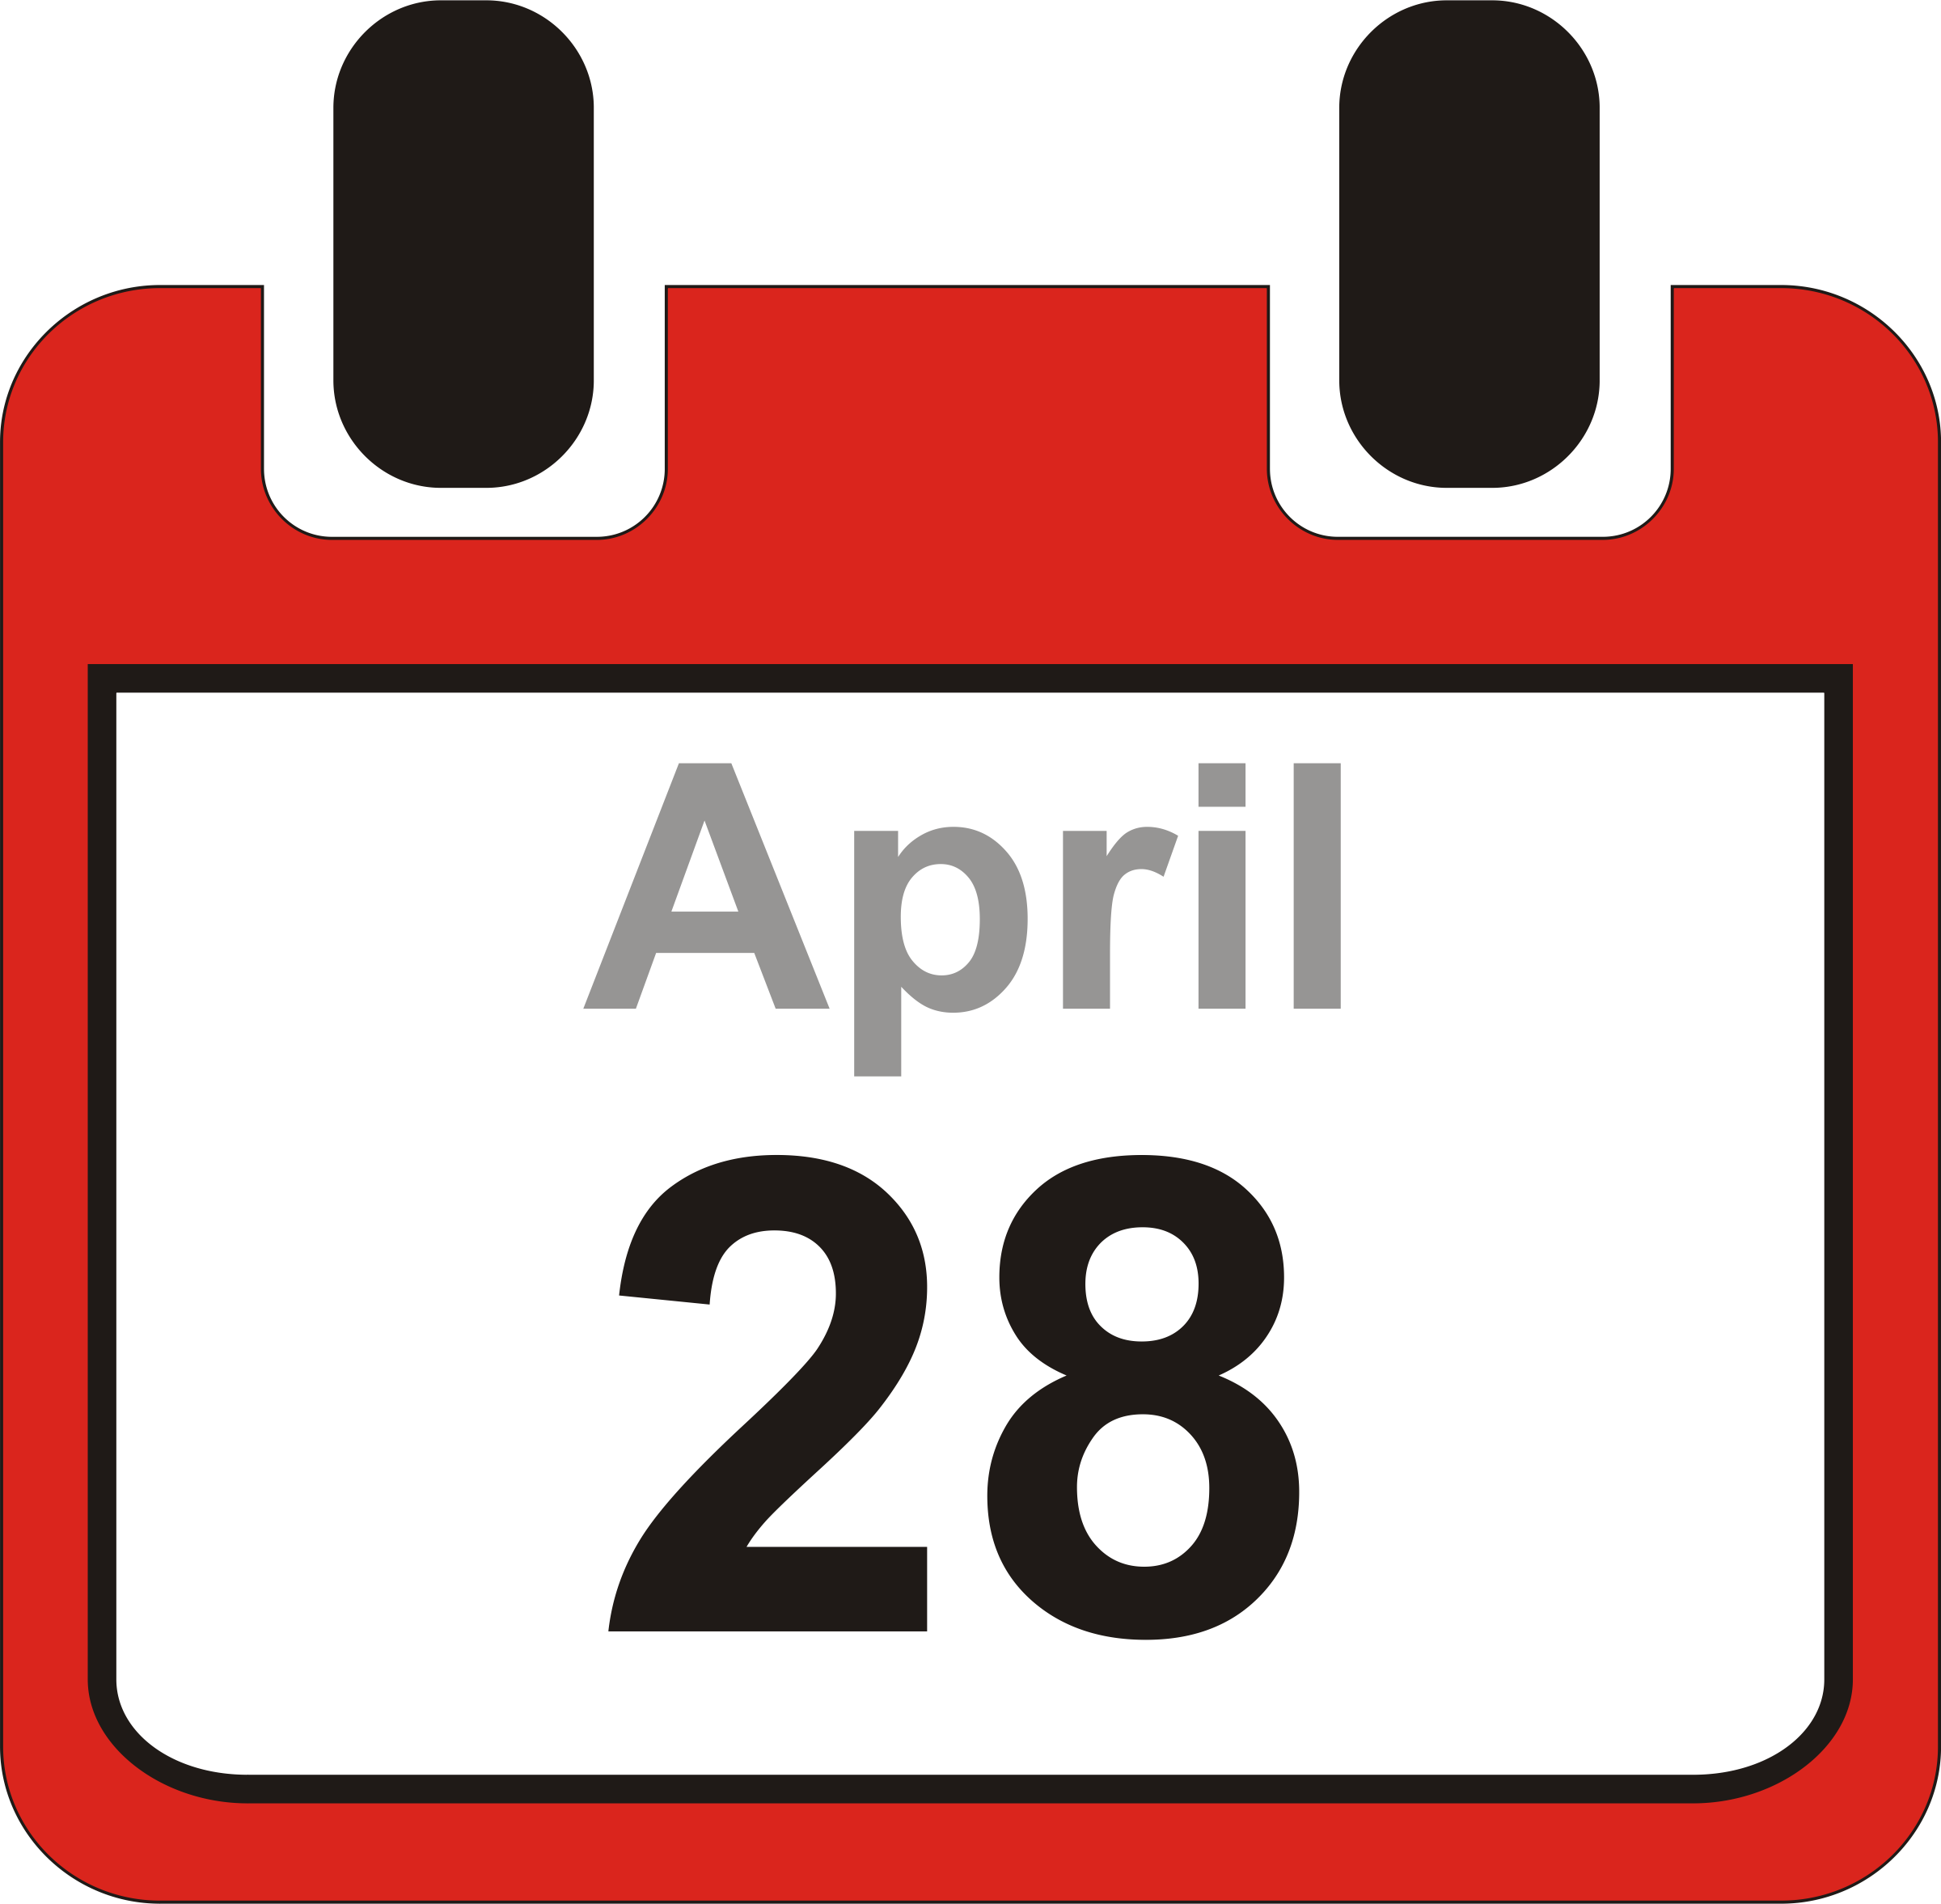 Calendar clip art free jpg library download April 28th calendar clipart - ClipartFest jpg library download